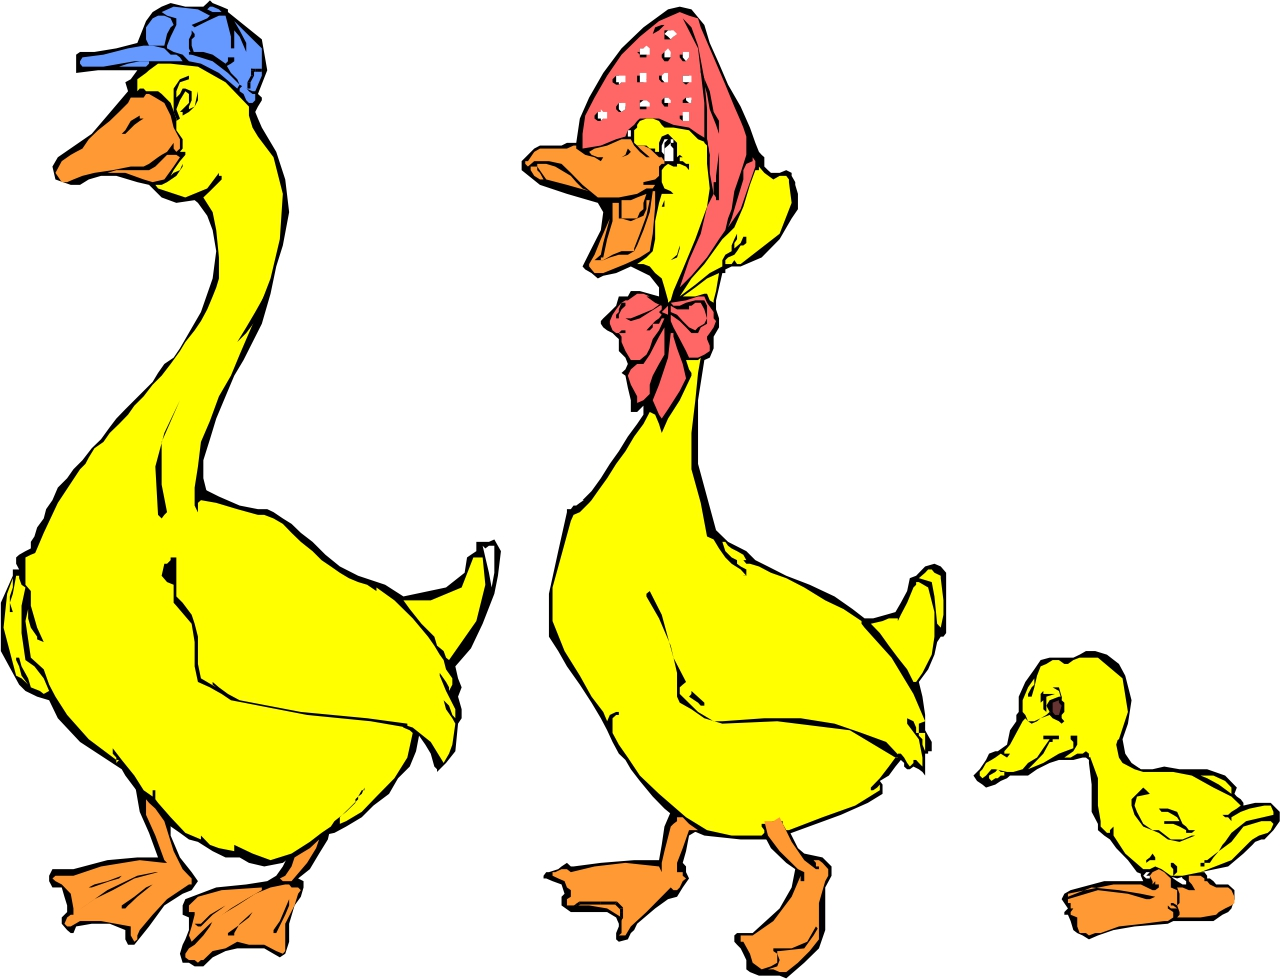 Ducklings Cartoon - ClipArt Best